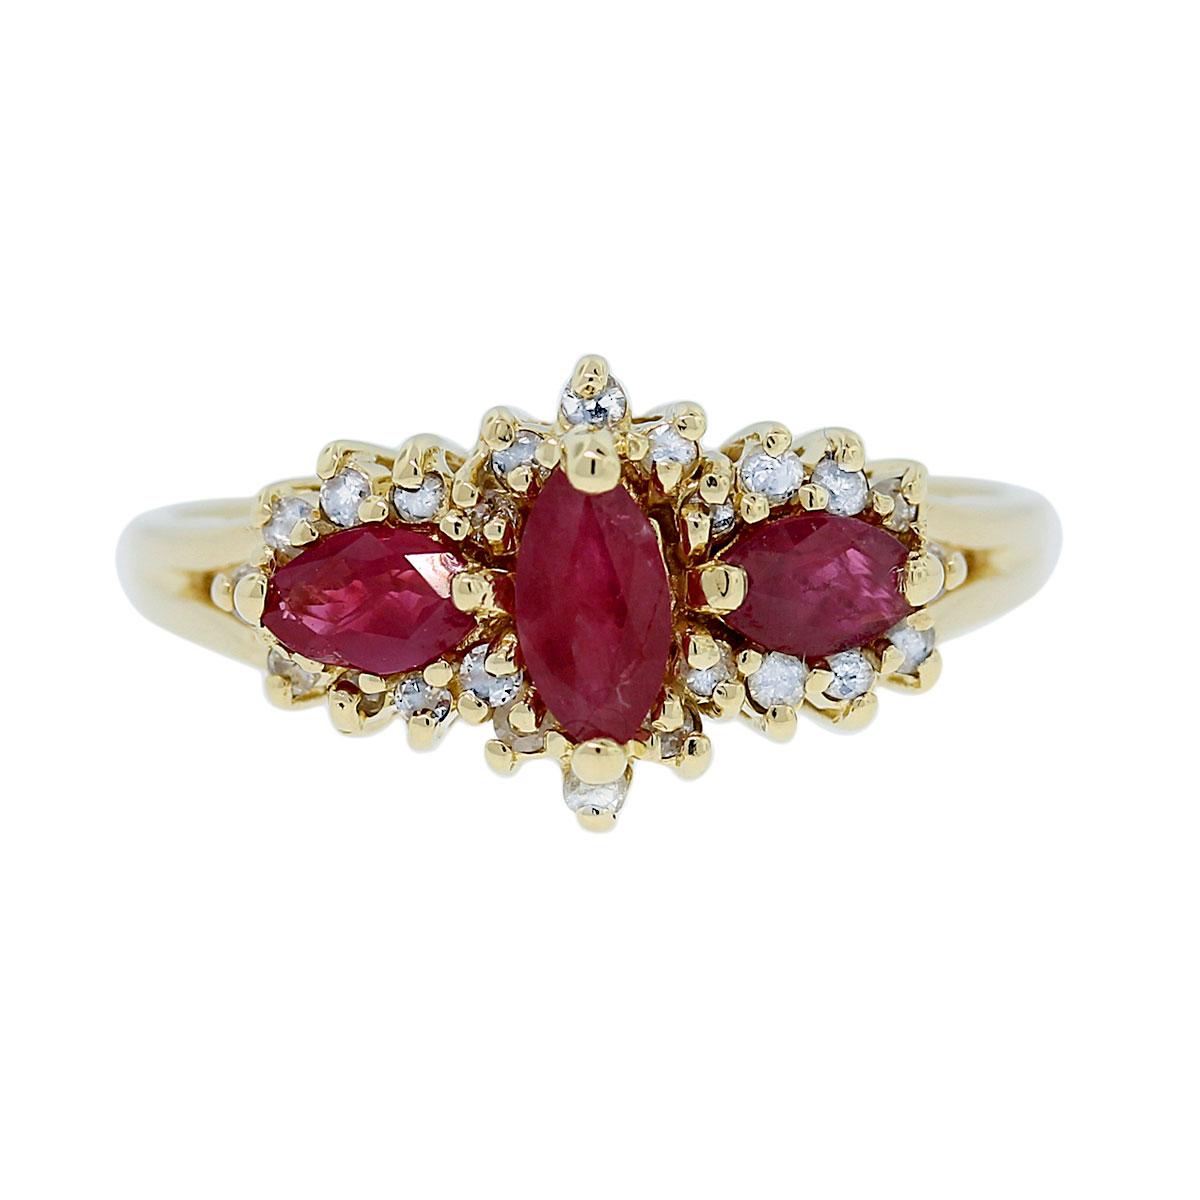 10k yellow gold marquise cut ruby diamond ring. Black Bedroom Furniture Sets. Home Design Ideas